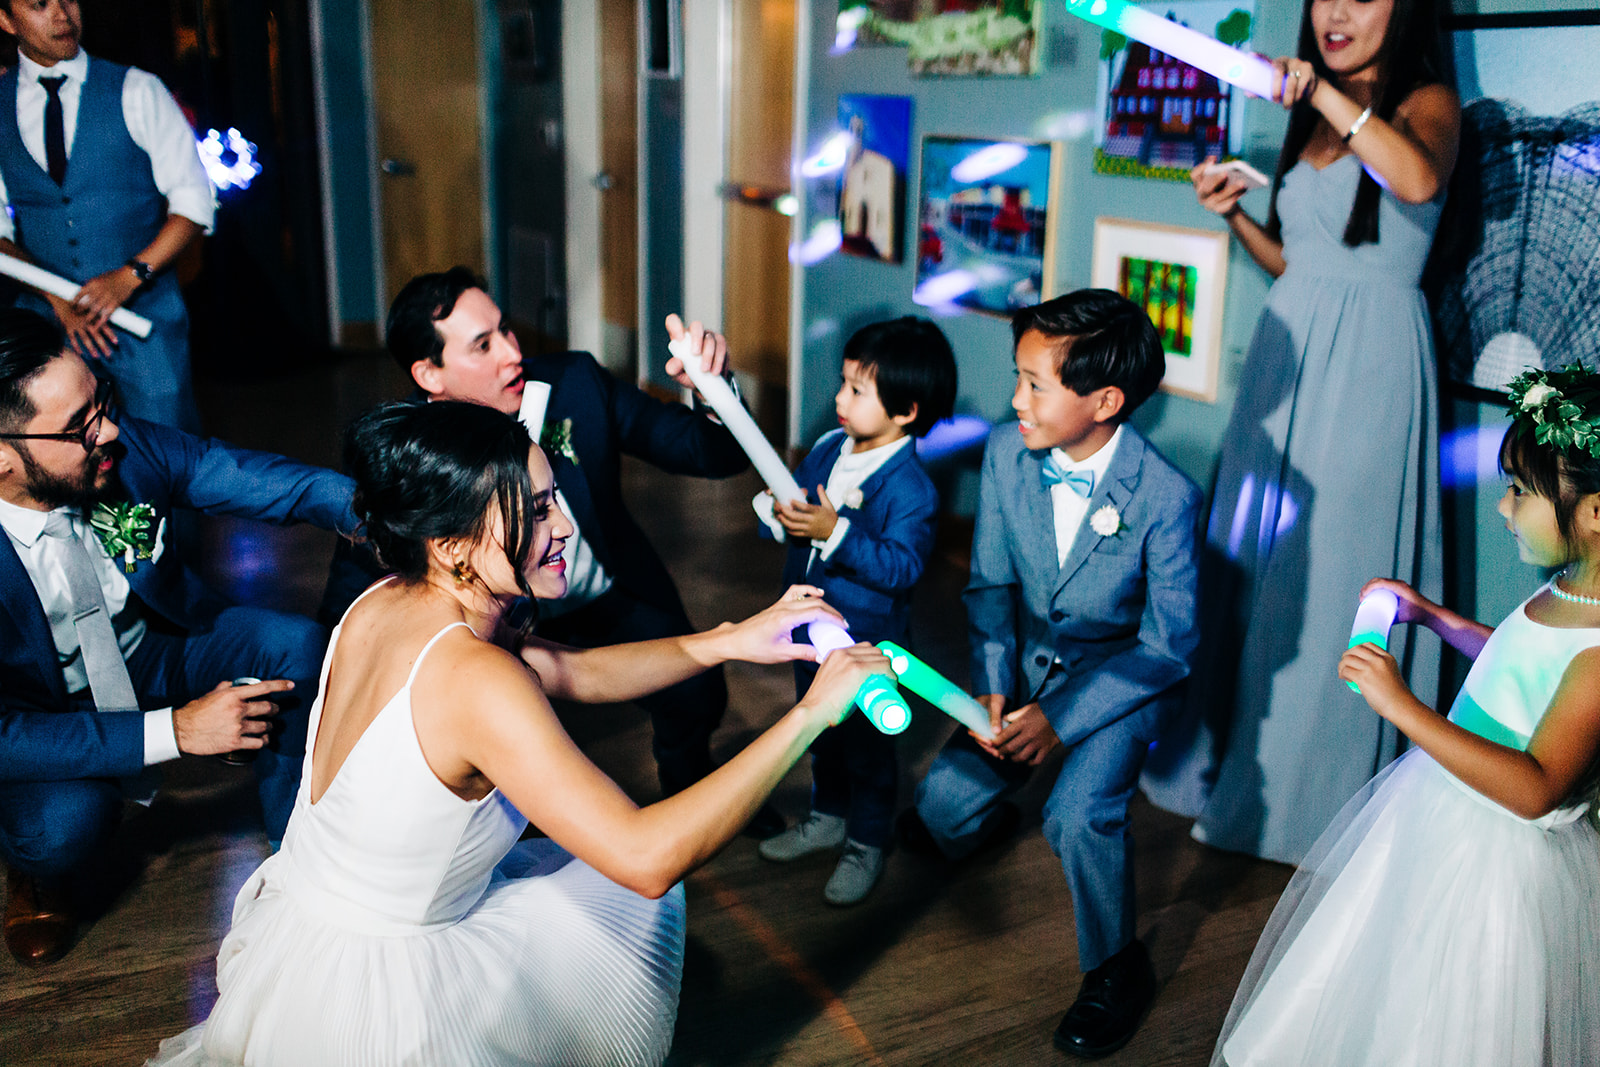 Los-Altos-History-Museum-Wedding_Orange-County-Wedding-Photographer_Clarisse-Rae-Photo-Video_97